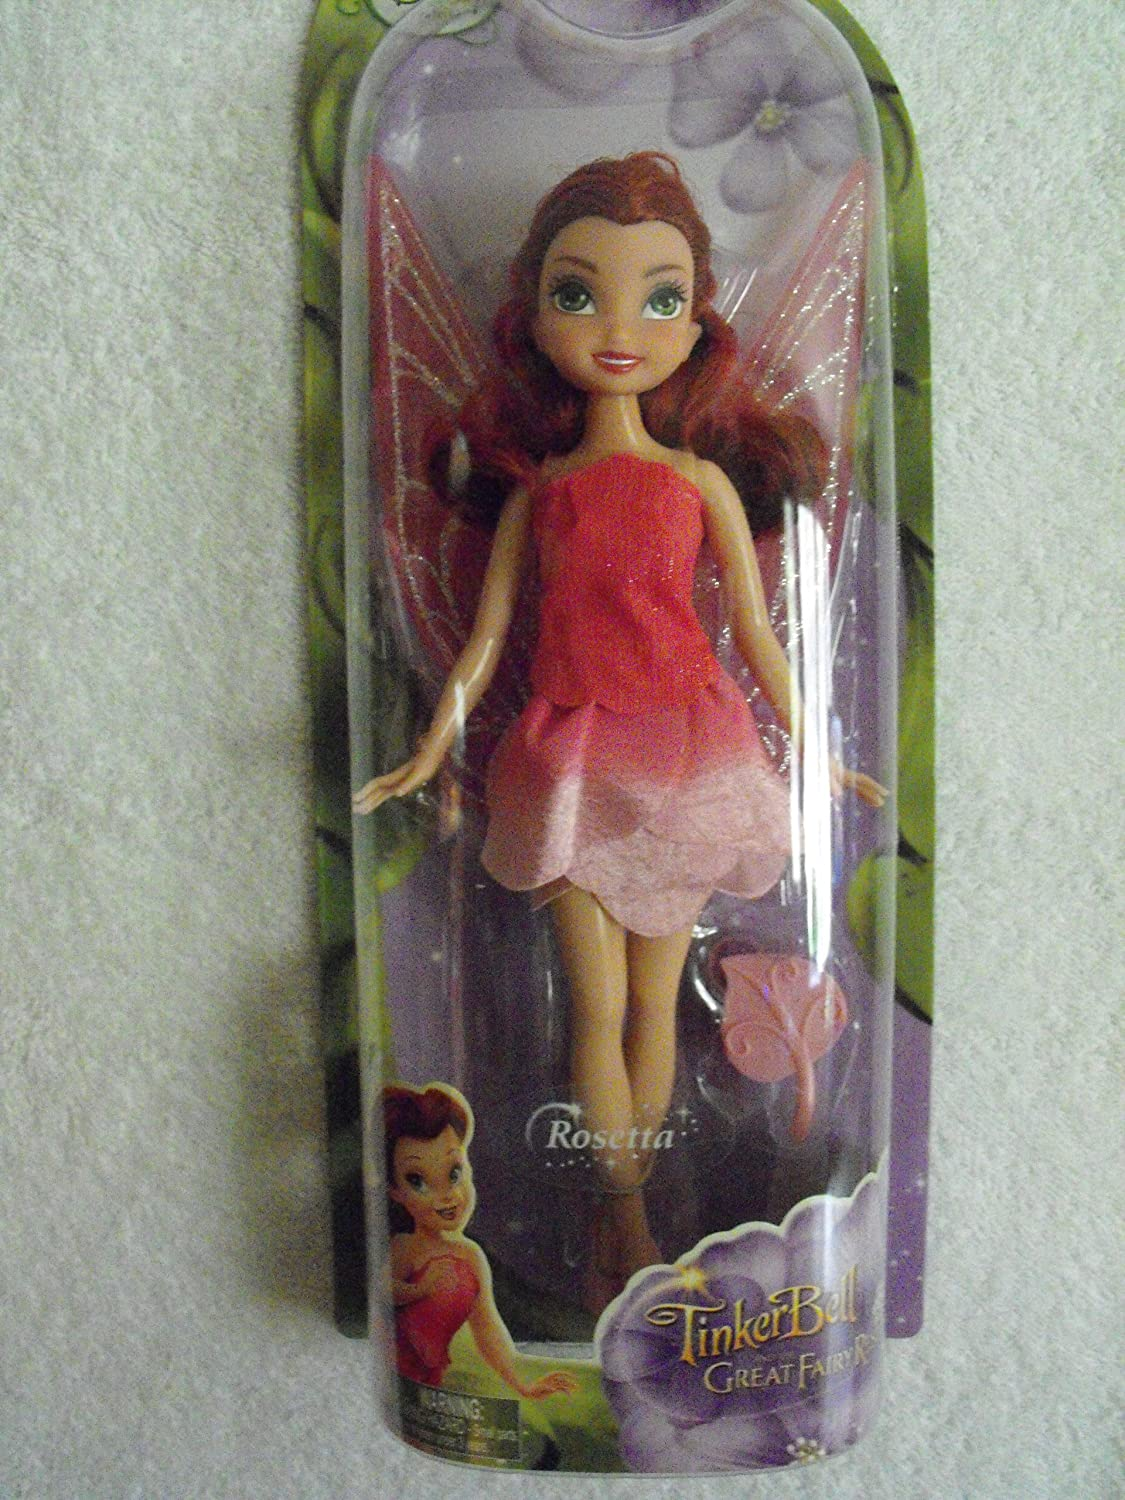 Disney Fairies Tinker Bell And The Great Fairy Rescue 9 Inch Figure Rosetta